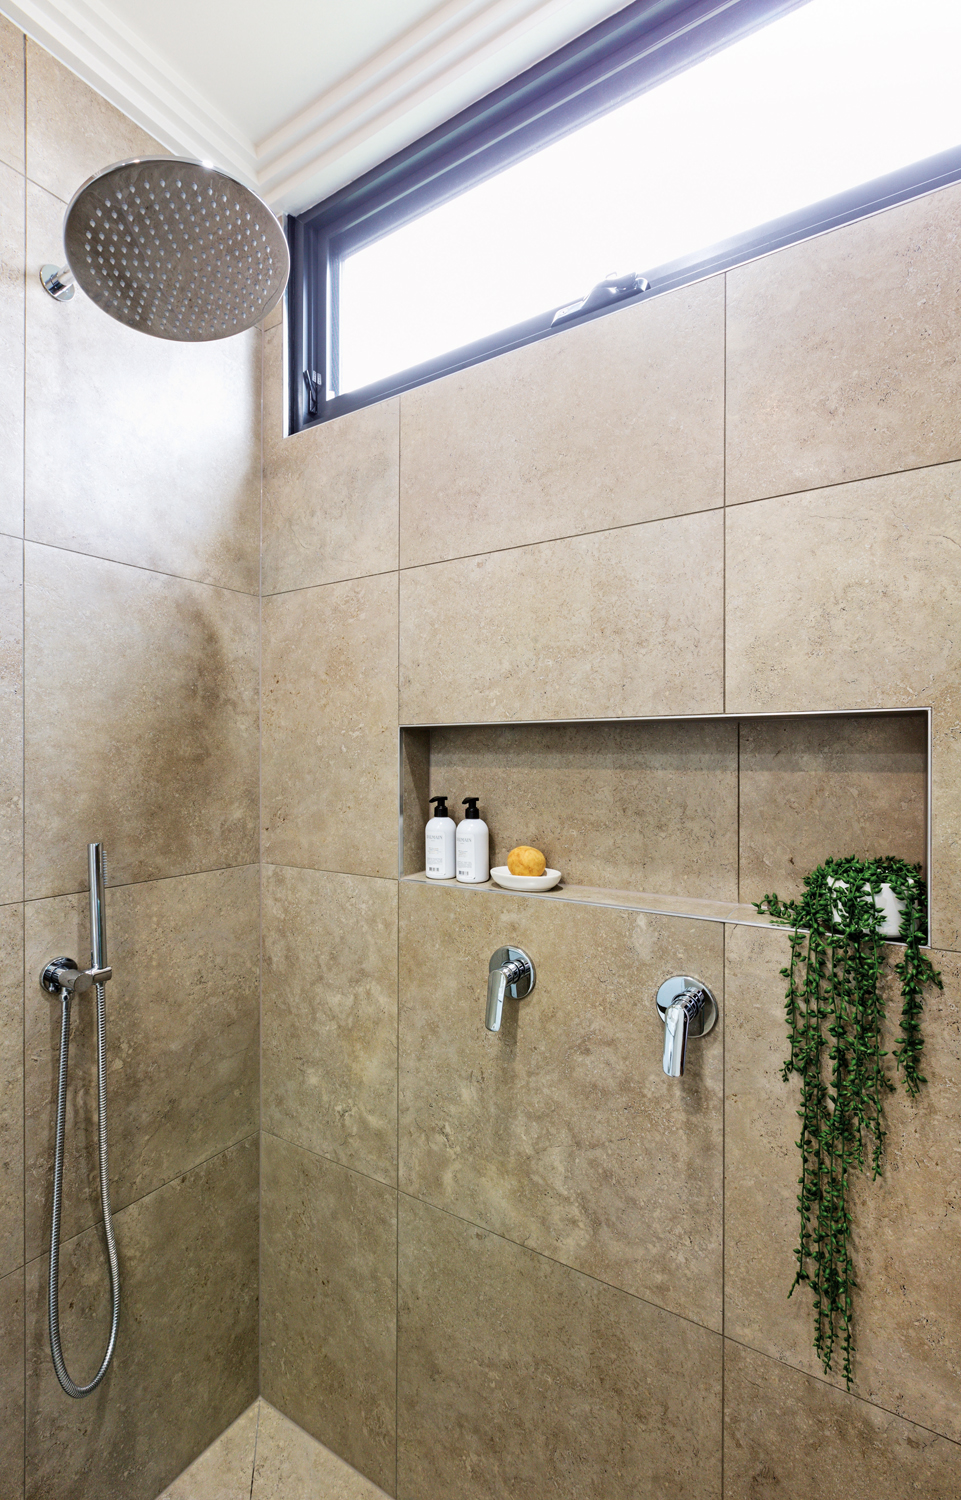 This luxurious spa-style bathroom is a modern masterpiece